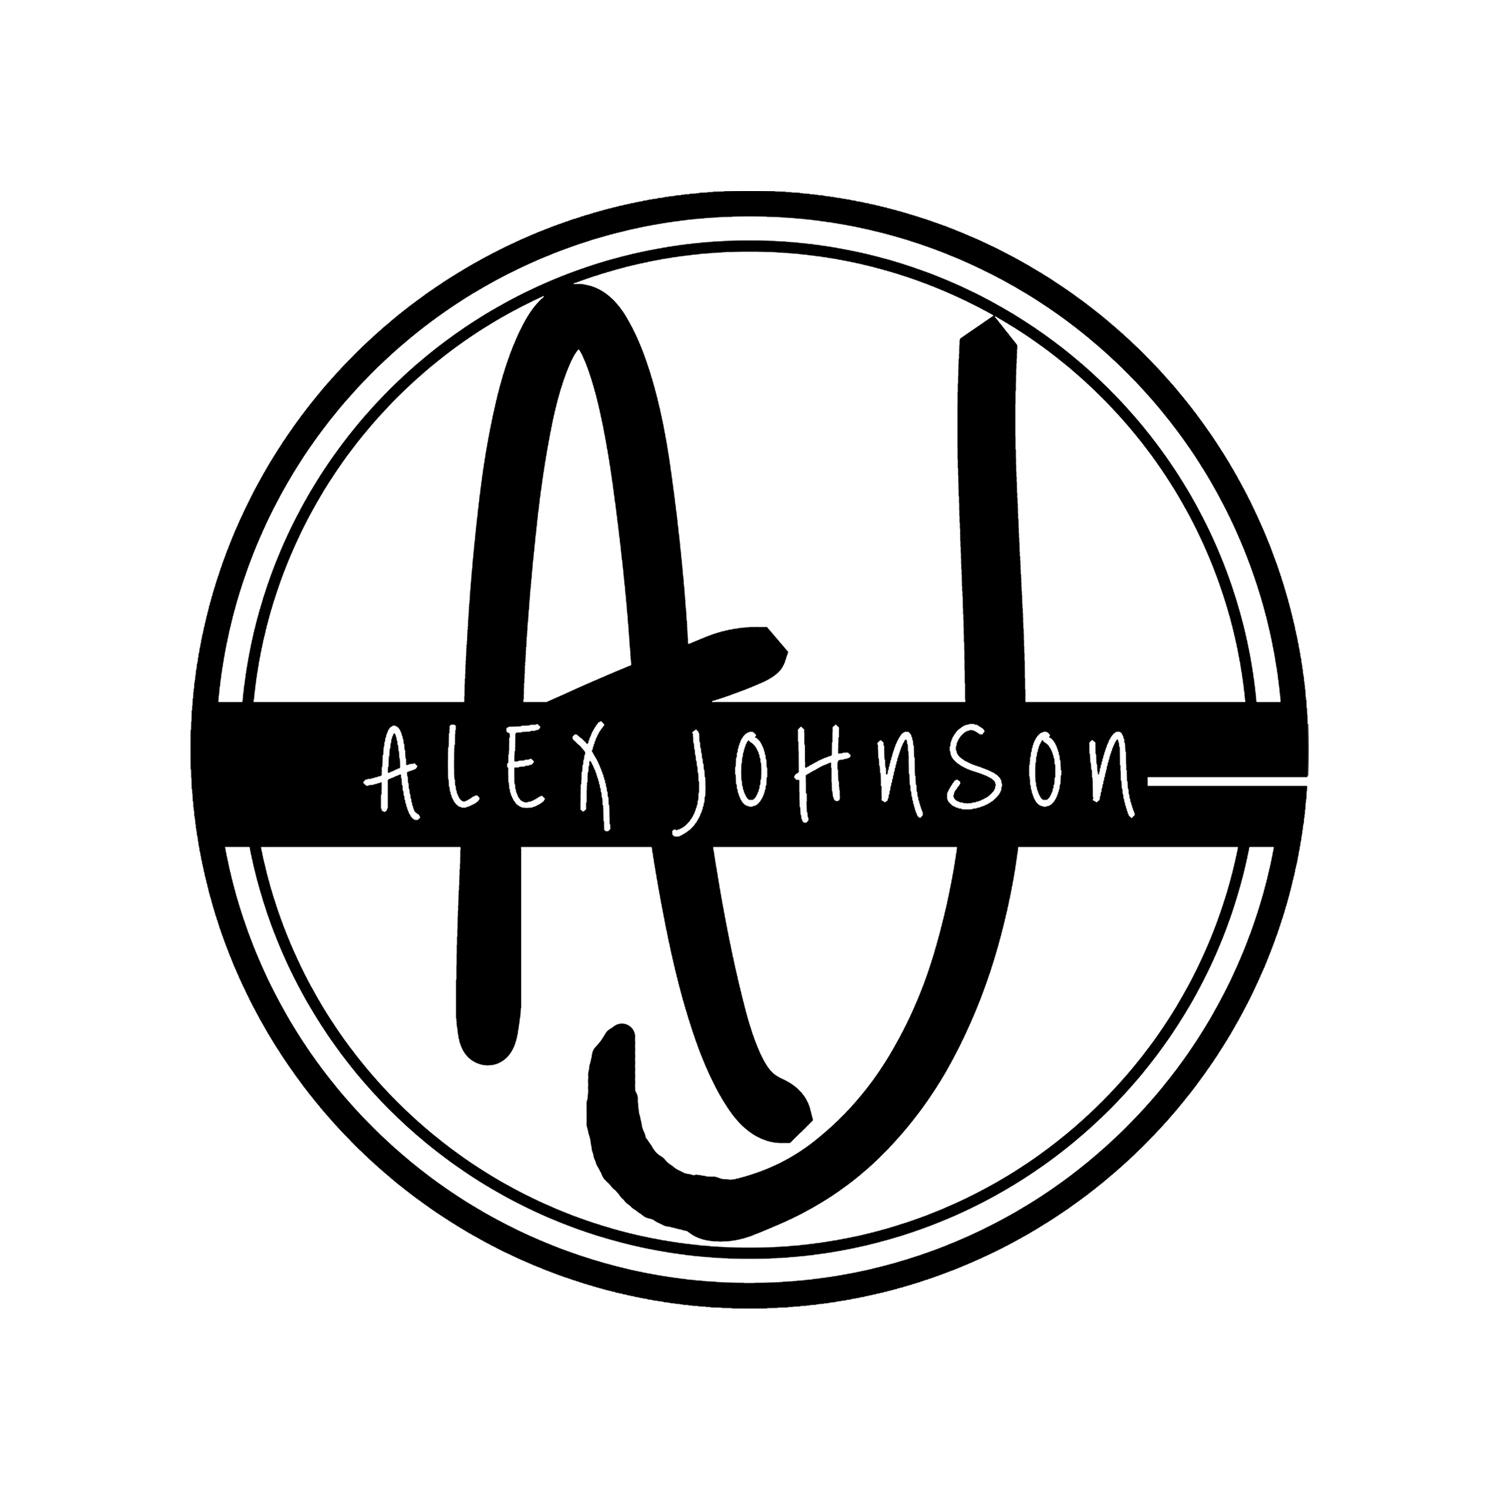 Alex-Johnson.jpg